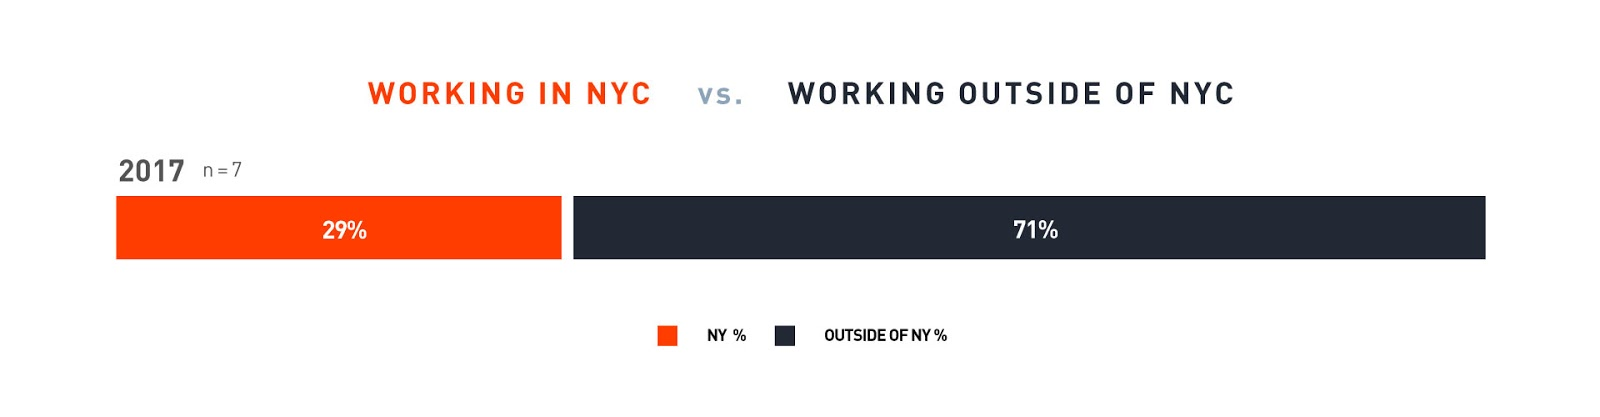 "Bar-graph, ""Post Graduation Location"" for 2017, 29% worked in NYC and 71% worked elsewhere."